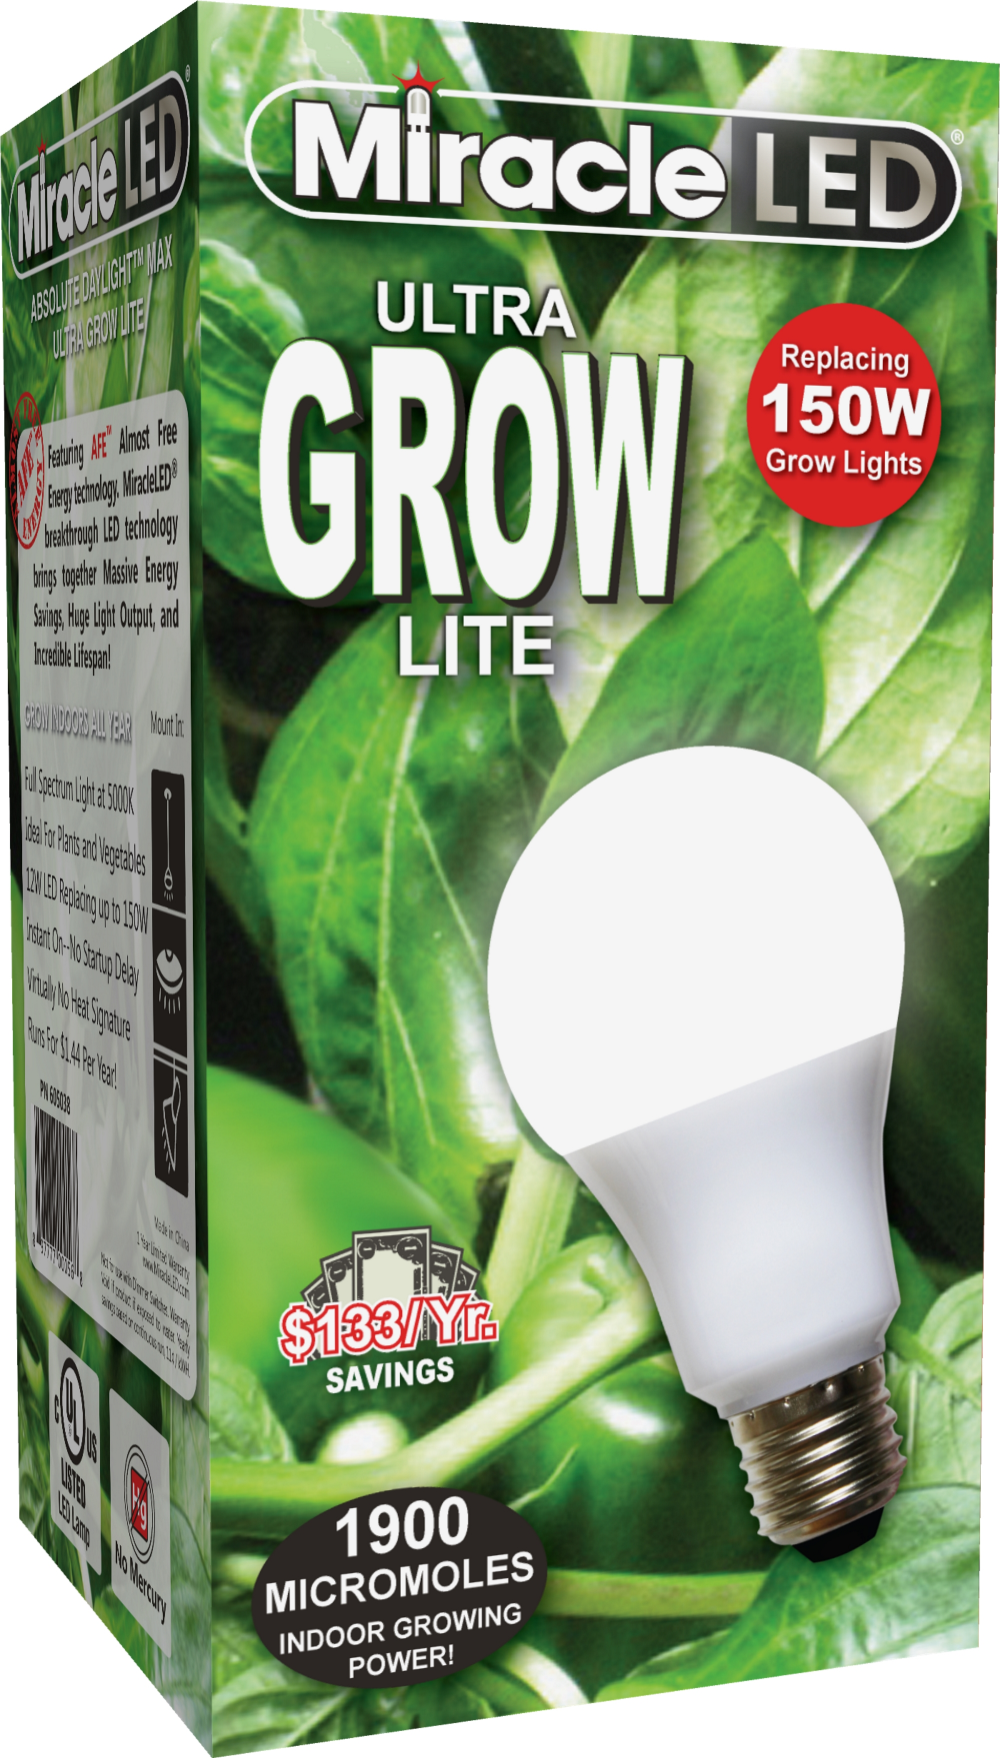 Miracle Led Ultra Grow Lite Replace 150w Full Spectrum Daylight Walmart Com Grow Lights For Plants Growing Plants Indoors Aquaponics Diy